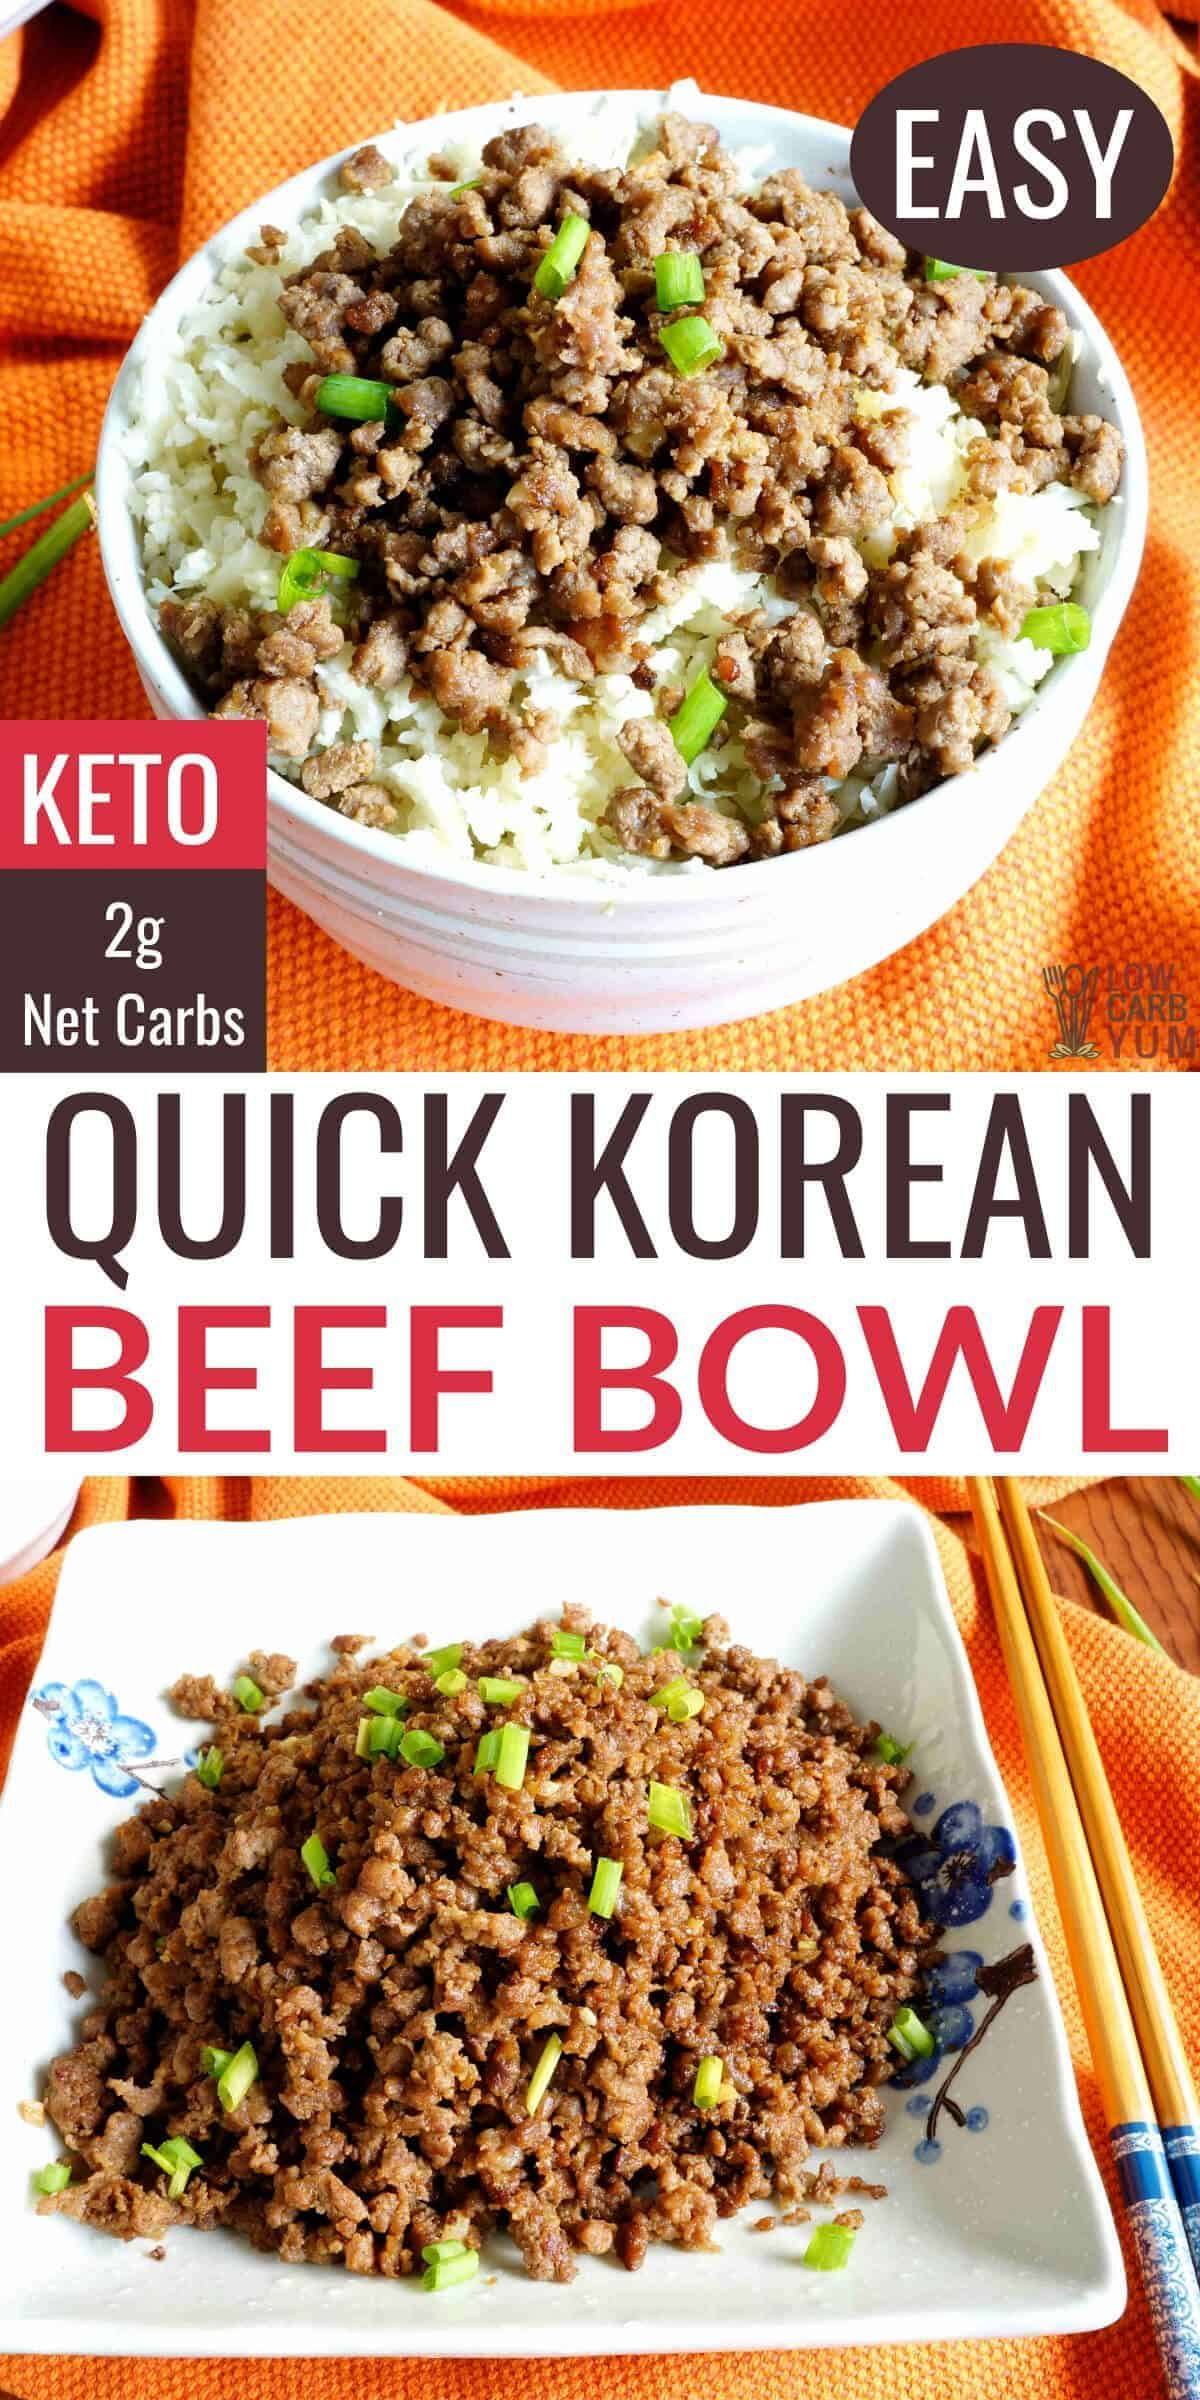 A Quick And Easy Keto Korean Ground Beef Recipe With Sweet And Spicy Seasonings It S A Dish That Ca In 2020 Ground Beef Bowl Recipe Keto Beef Recipes Beef Bowl Recipe